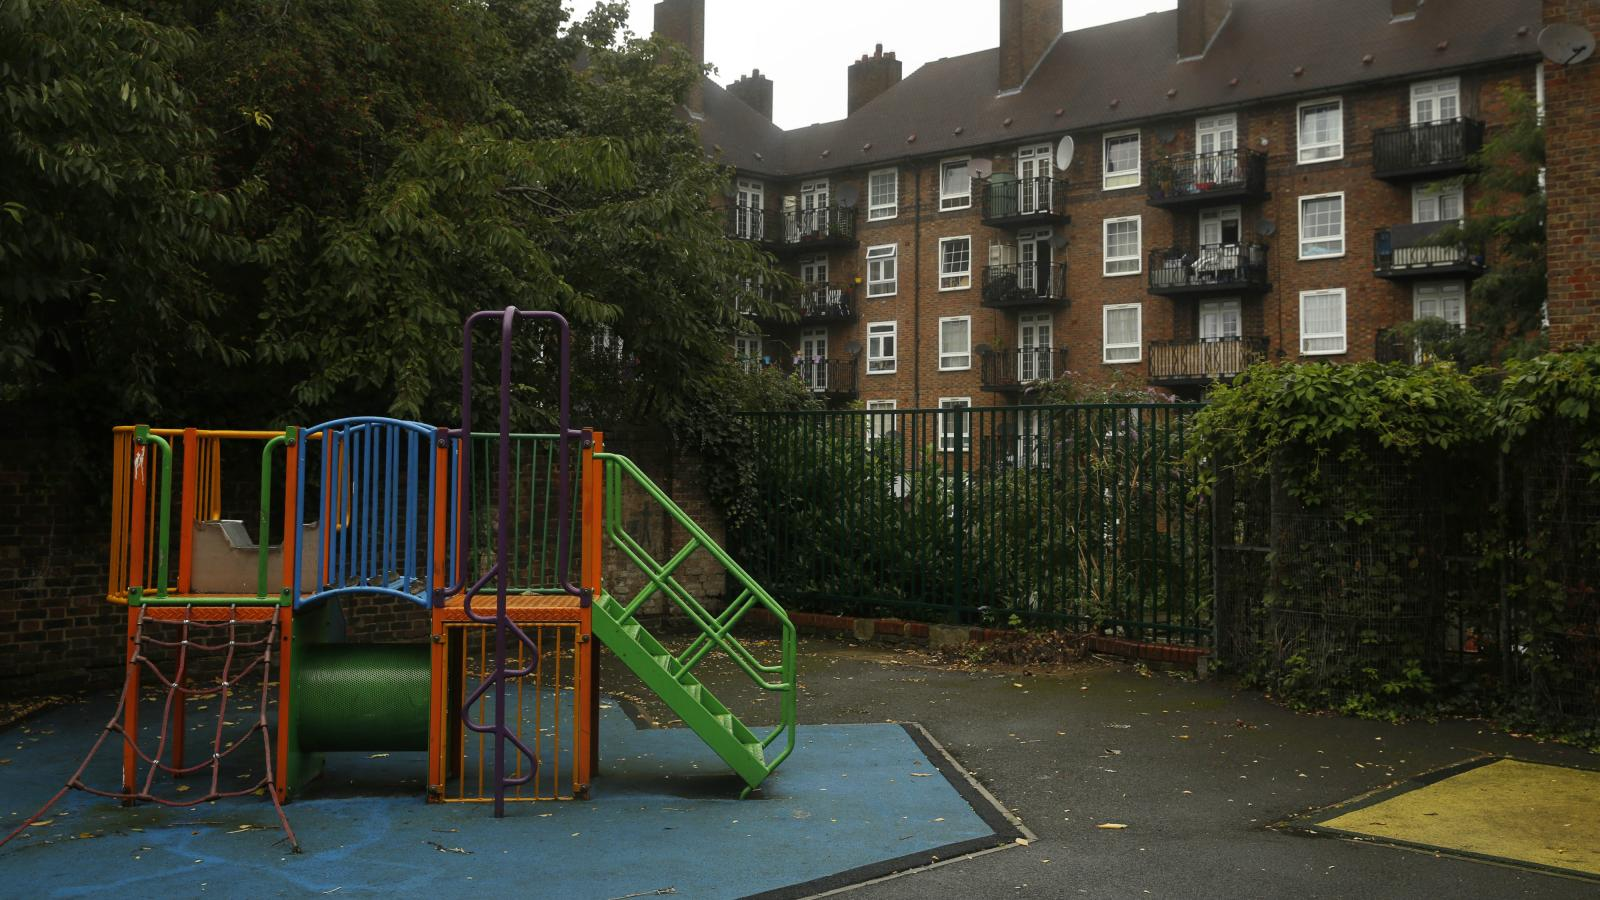 In Britains Playgrounds Bringing In >> A Segregated London Playground Is Igniting Outrage Over Inequality